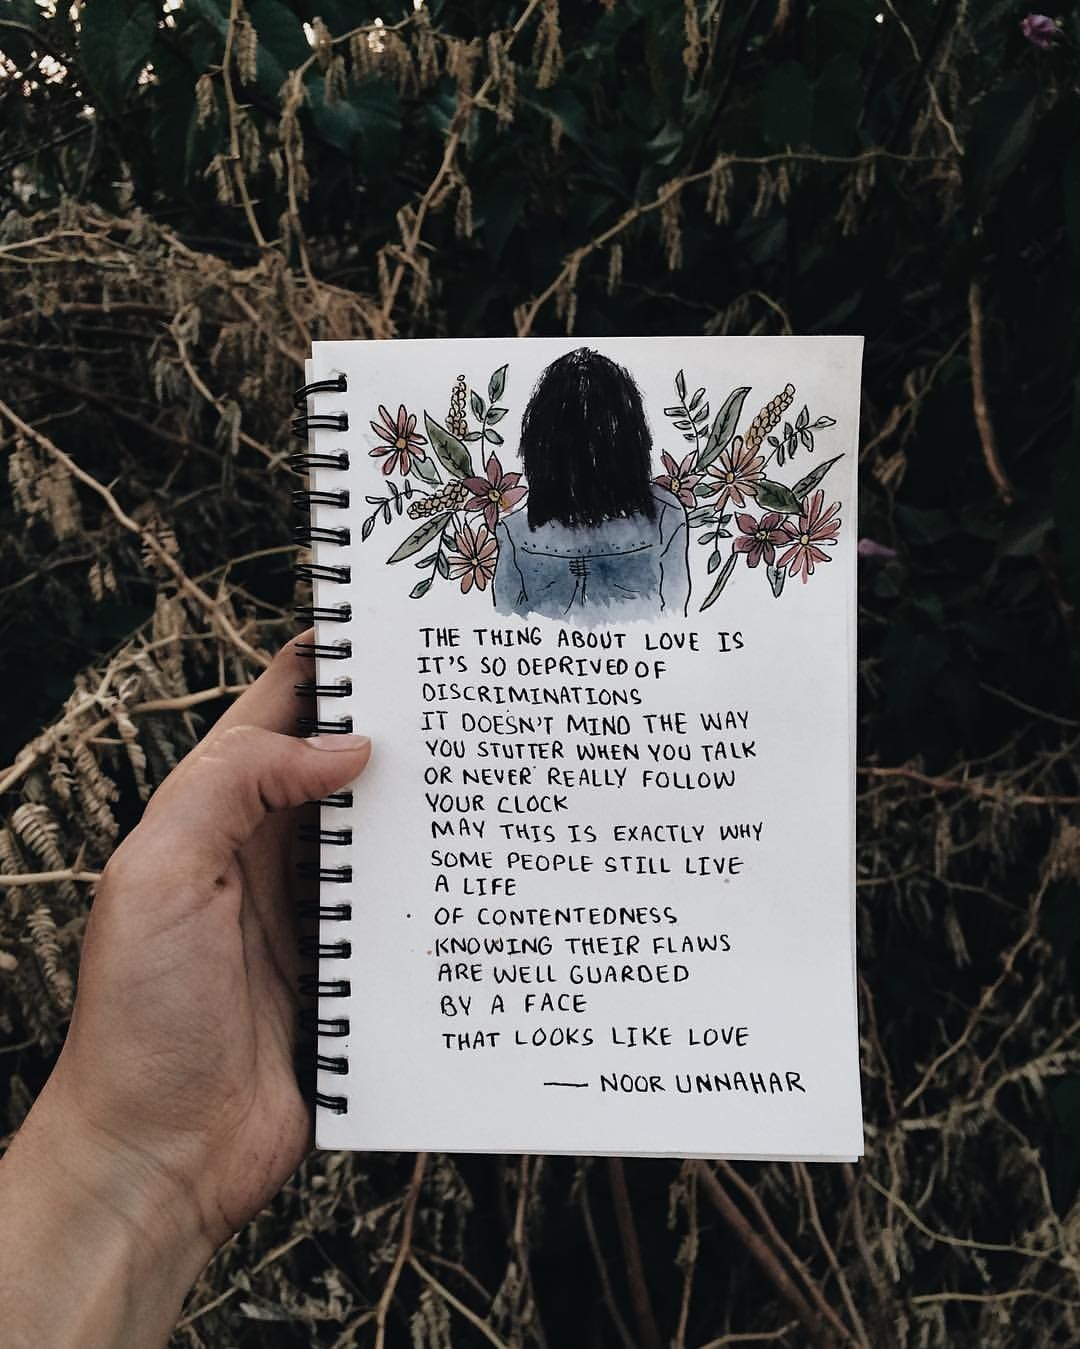 A face that looks like love poetry by noor unnahar for Art inspiration ideas tumblr